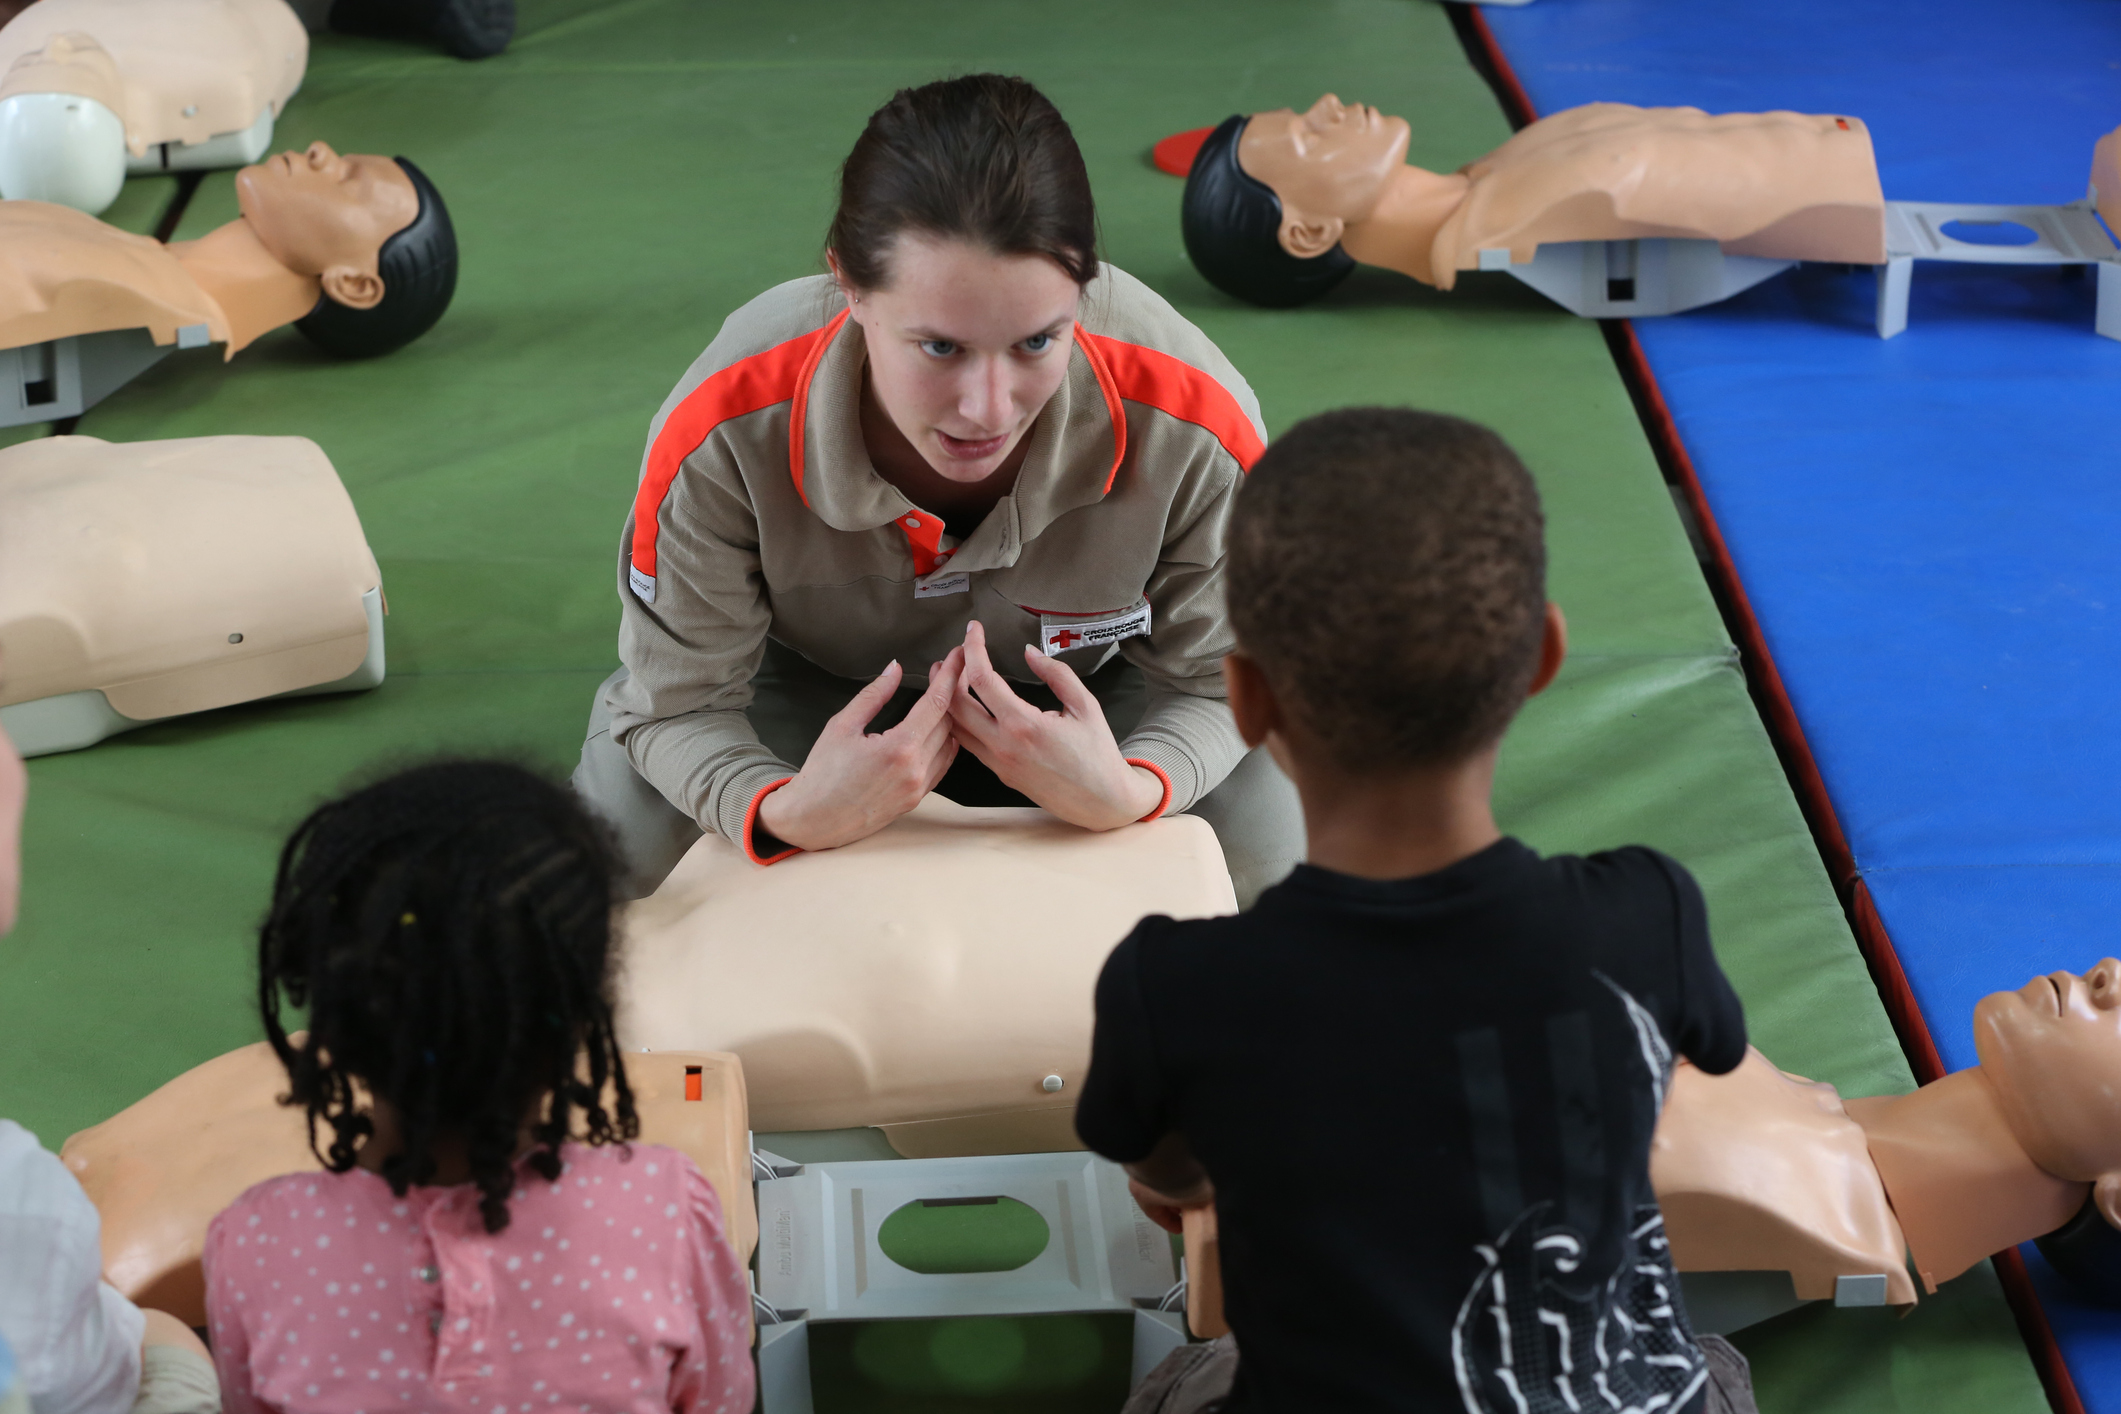 Three potentially life-saving skills all parents should teach their kids